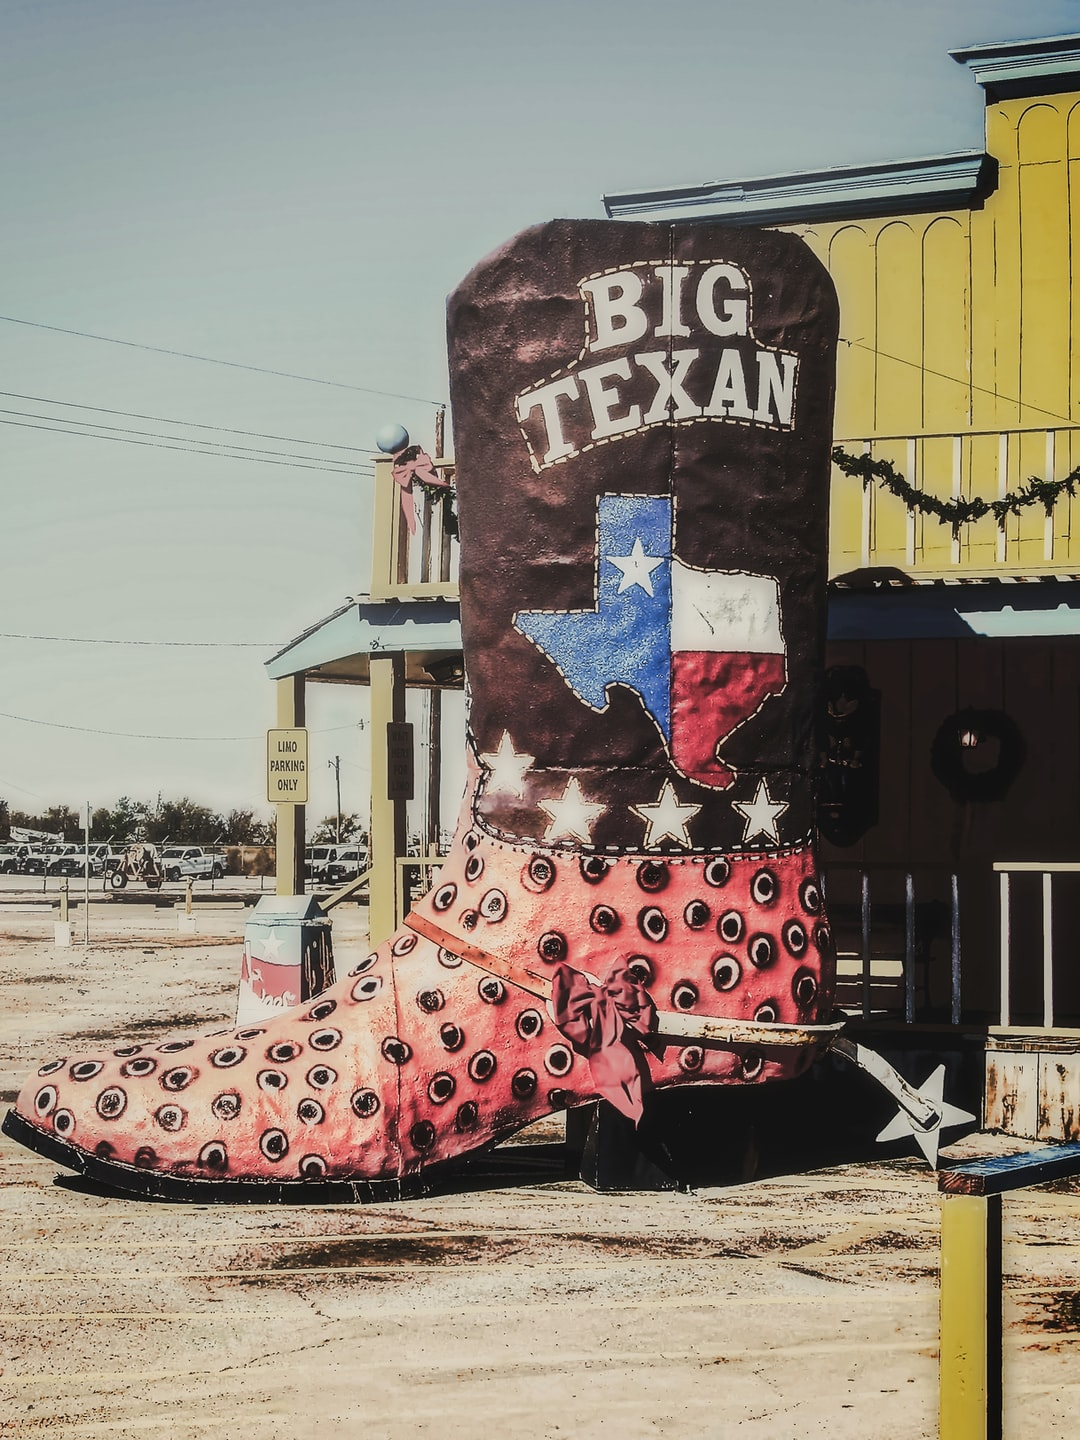 A giant ostrich book with spurs outside The Big Texan Steak House in Amarillo, Texas, USA on a very hot and sunny November afternoon (2008).